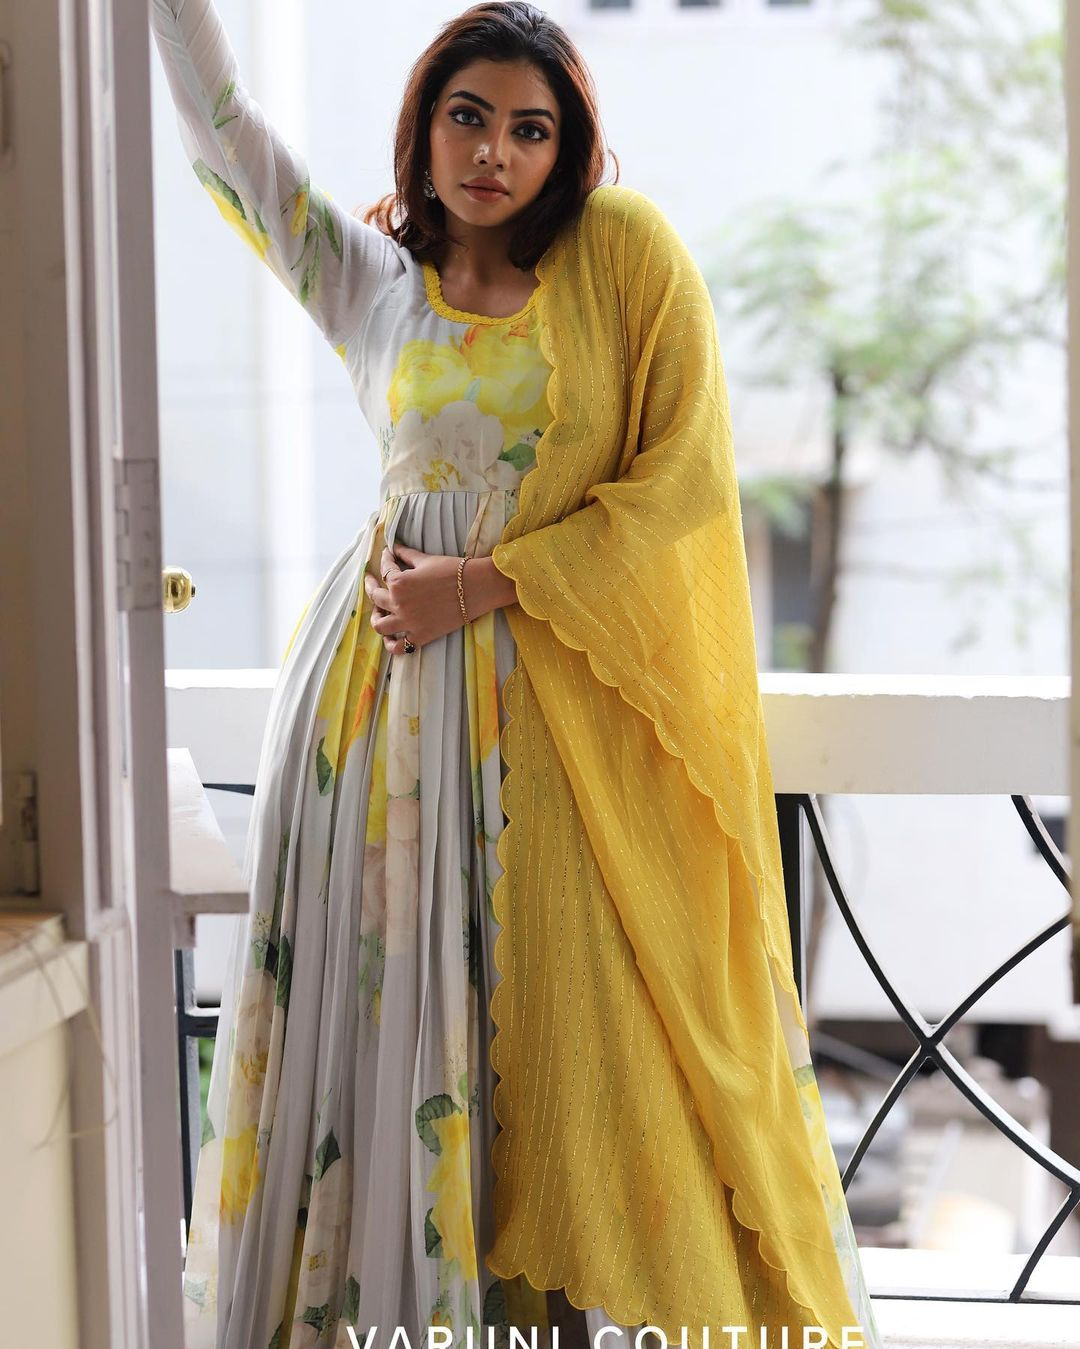 Stunning gray colour floral annarkali dress with yellow net dupatta. Outfit priced at 8200 INR.